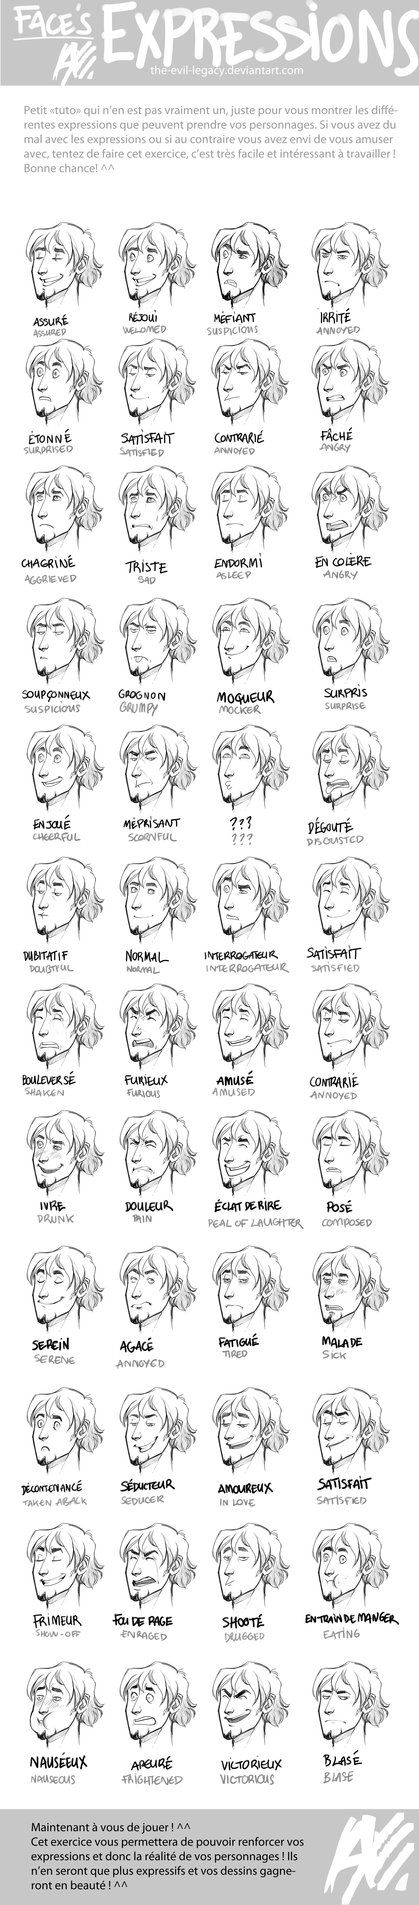 PoP - expressions tuto by the-evil-legacy on DeviantArt